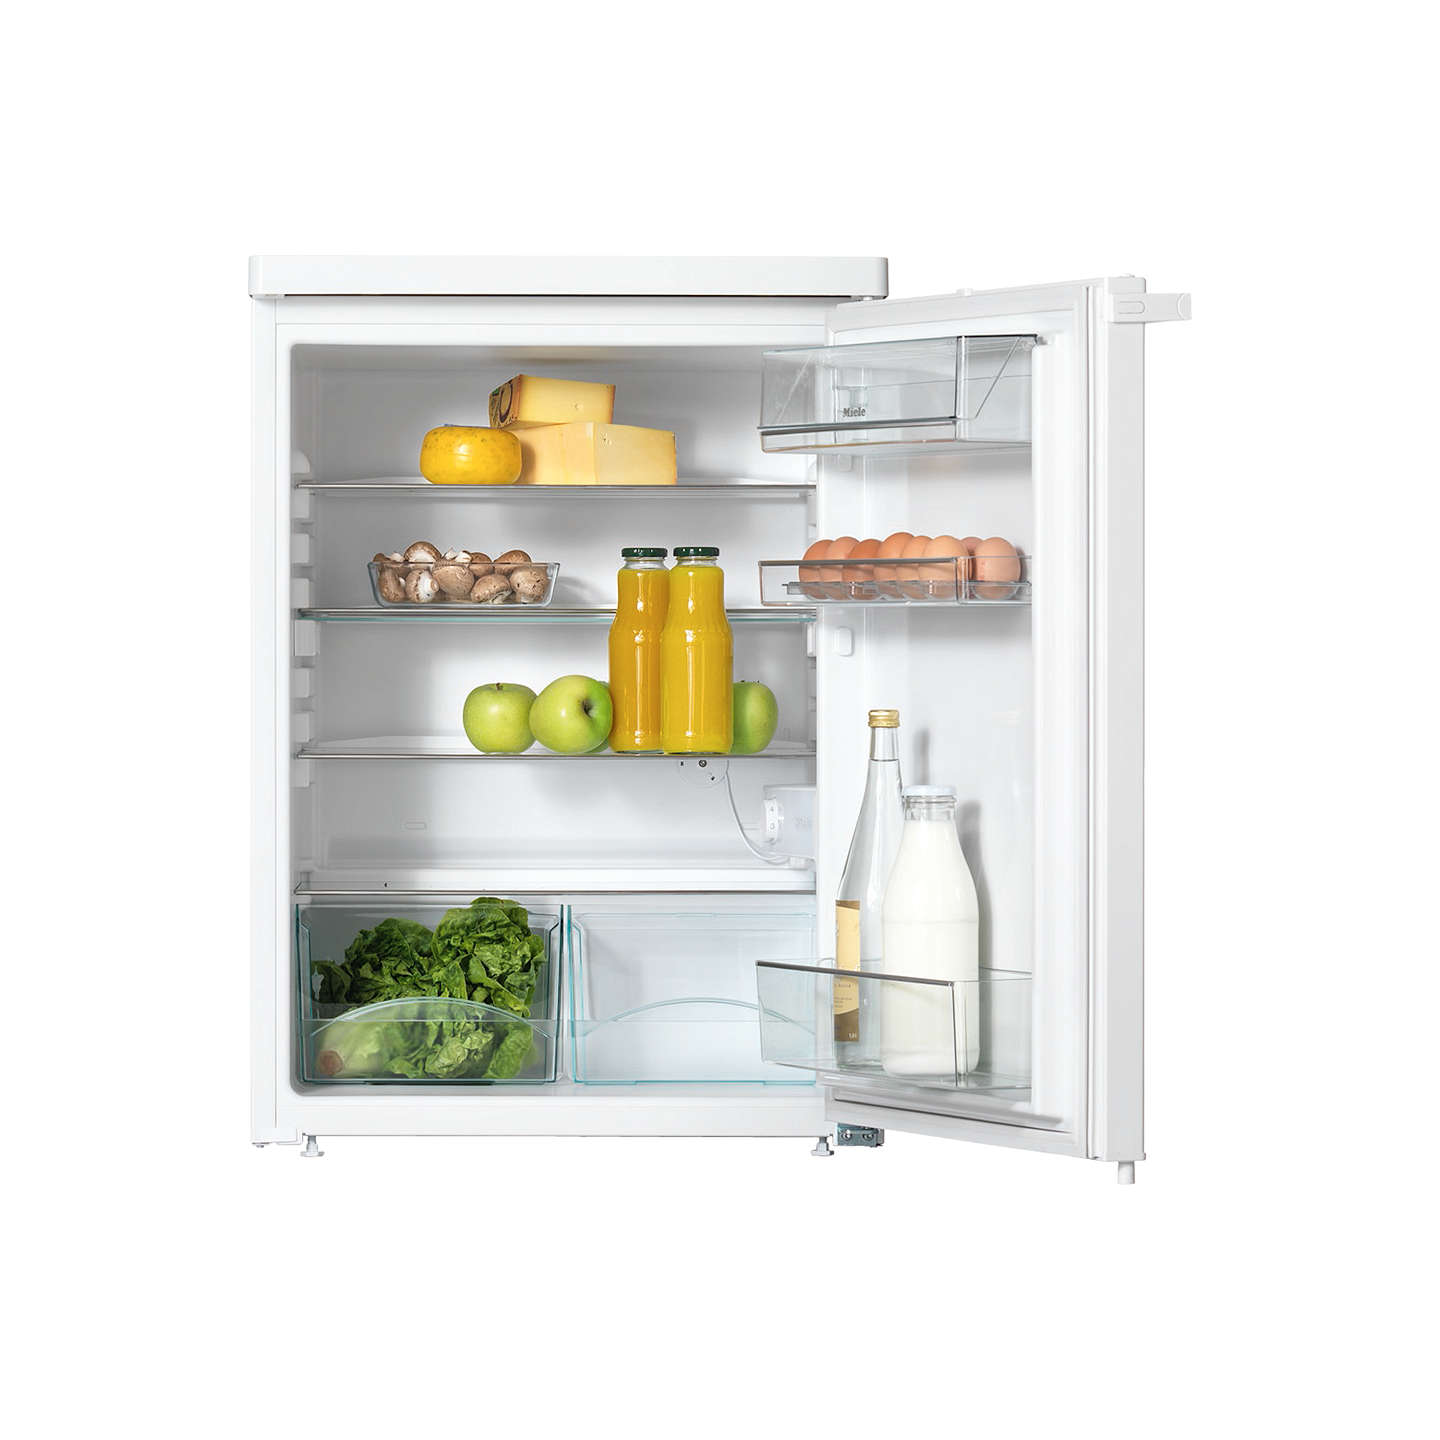 BuyMiele K12020S-1 Larder Fridge, A+ Energy Rating, 60cm Wide, White Online at johnlewis.com